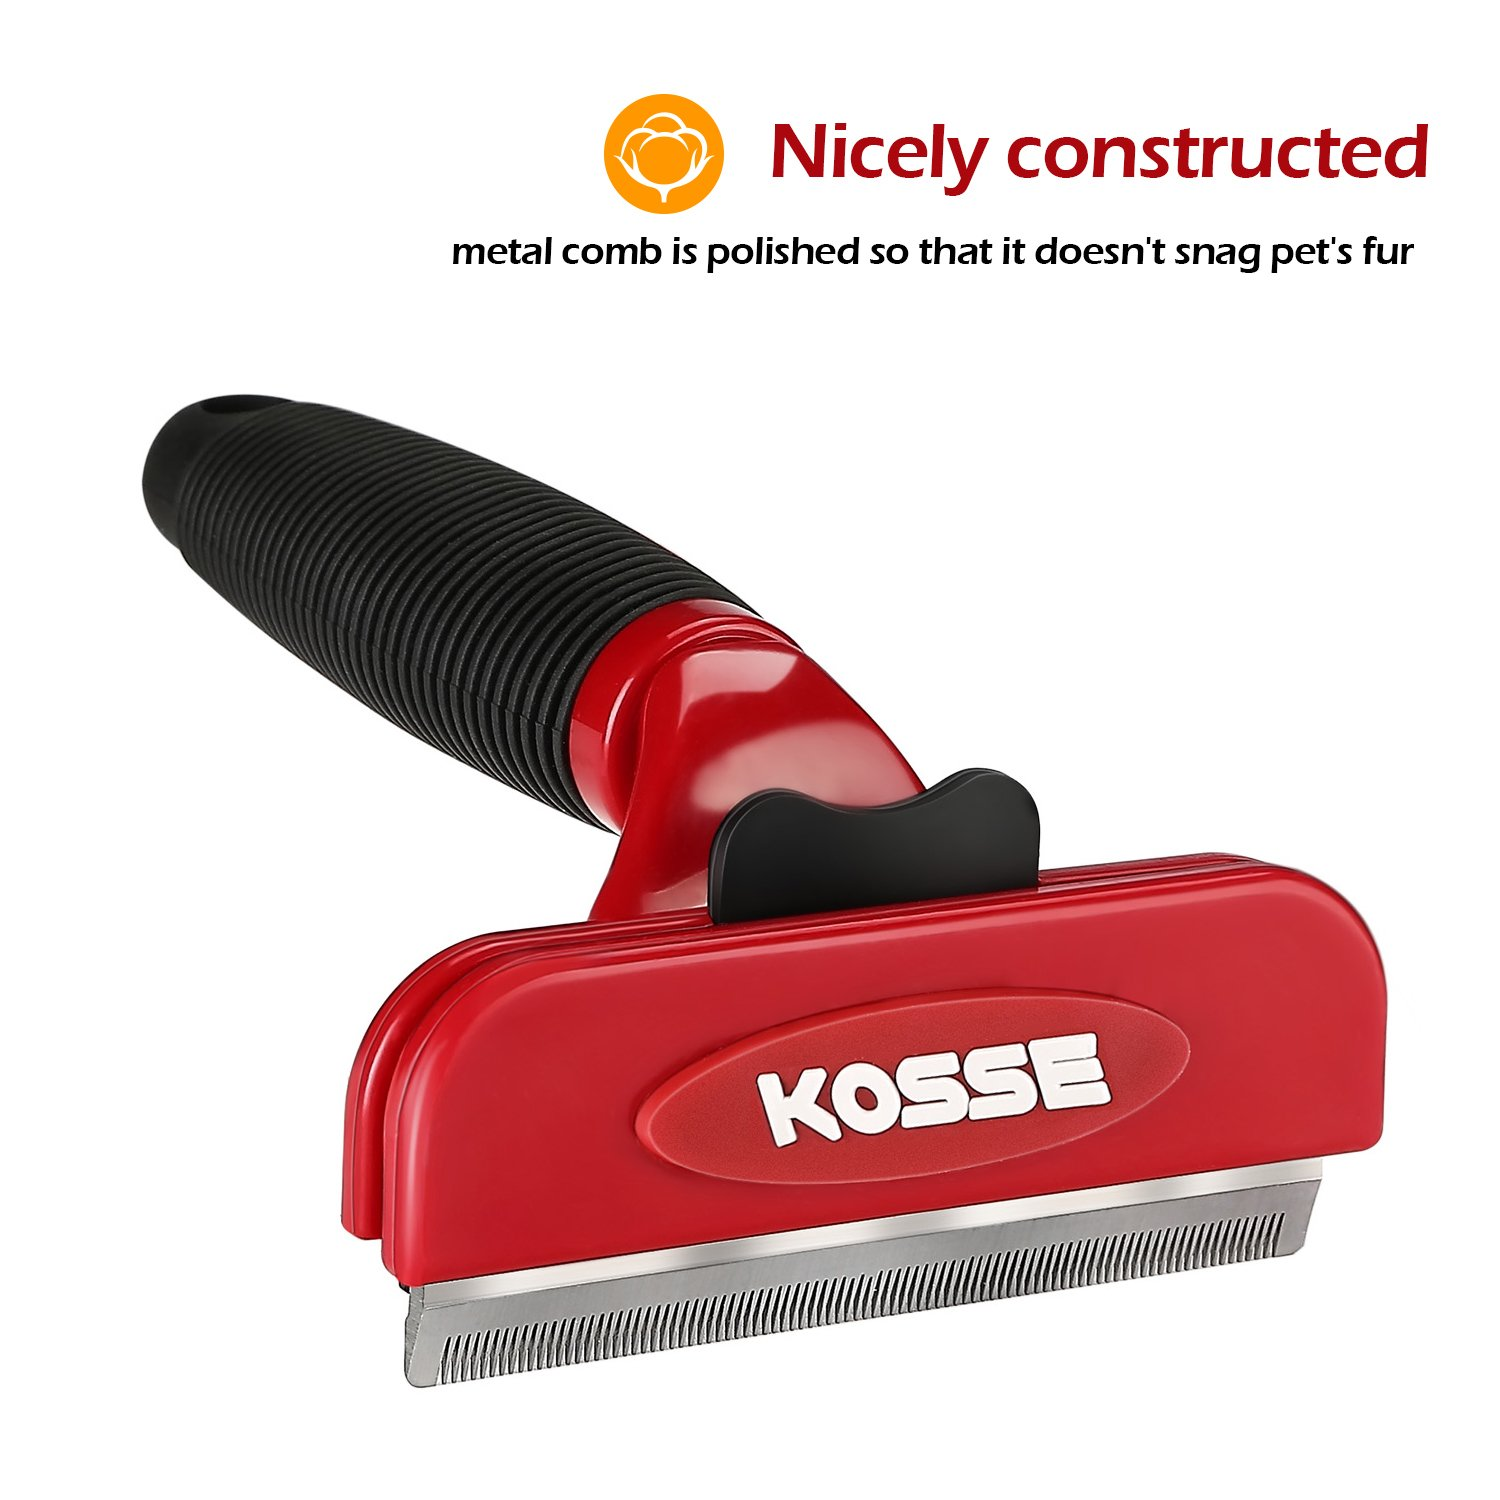 Professional Pet Deshedding Tool with Fur Ejector, Kosse Grooming Brush Effectively Reduces Shedding by up to 90%, Grooming Comb for Cats and Dogs (Medium) by Kosse (Image #4)